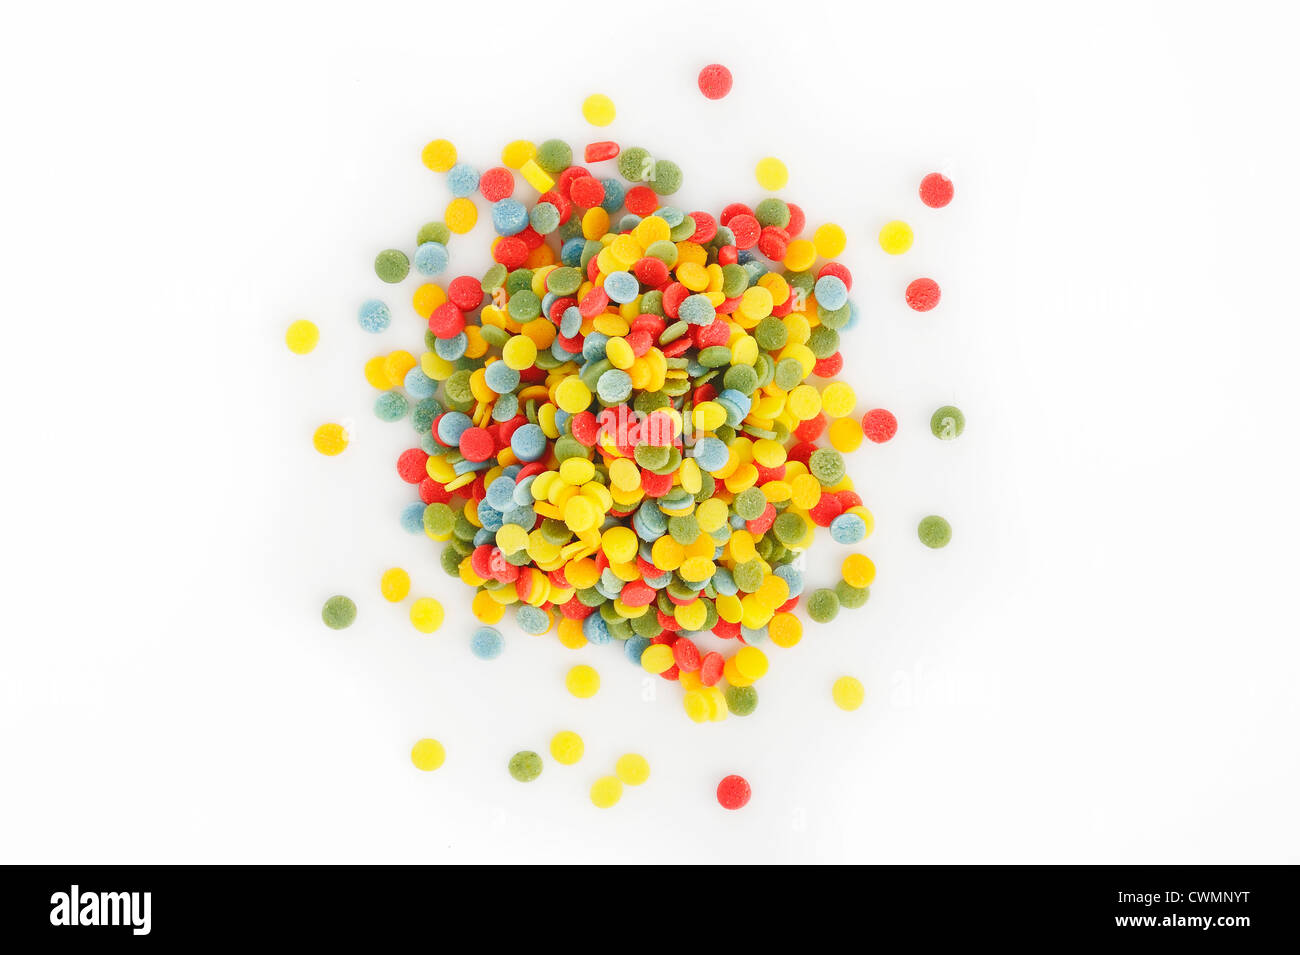 multi-colored sprinkles topping on white background - Stock Image